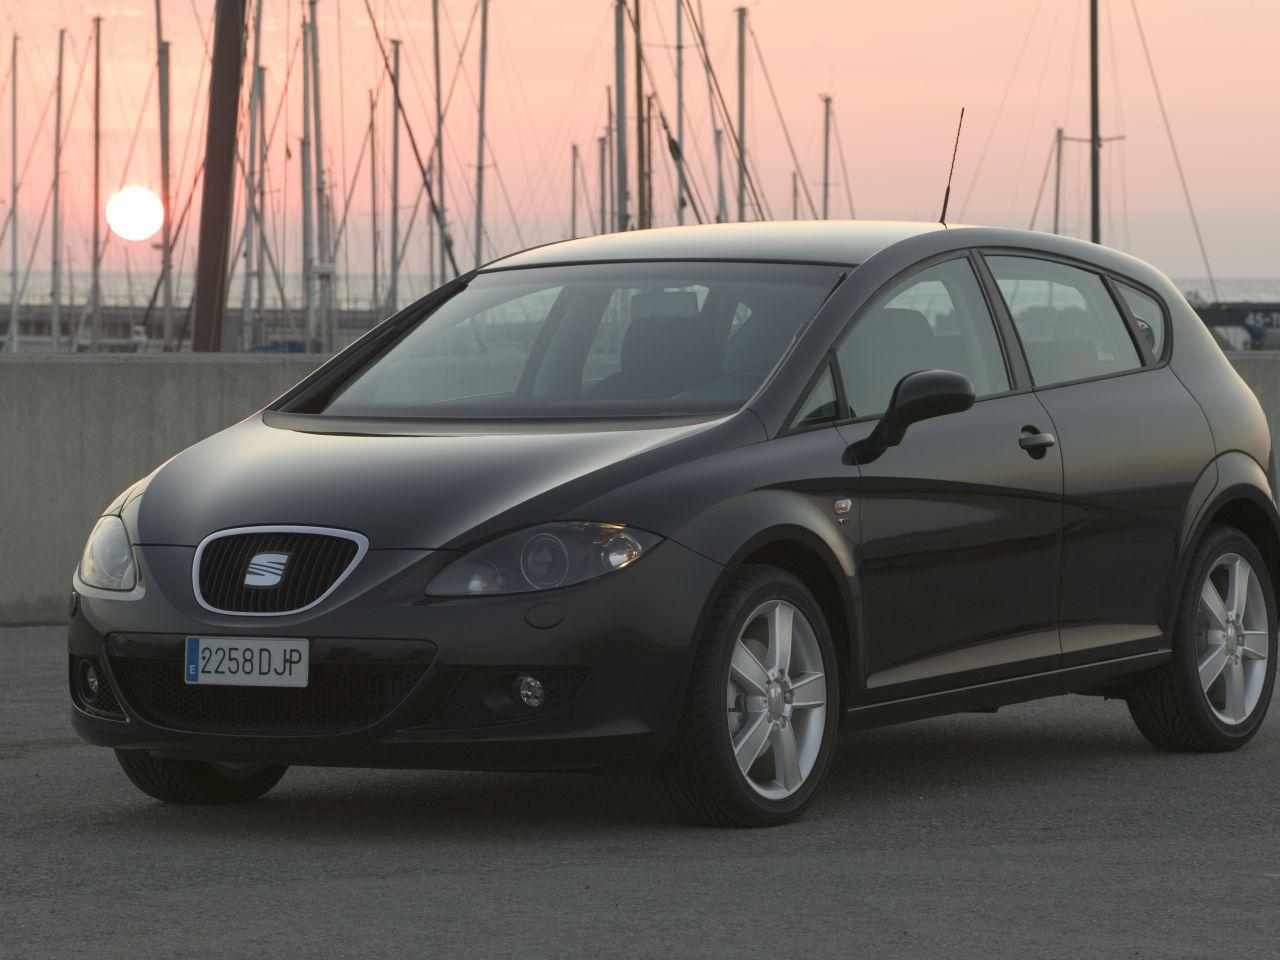 seat leon occasion video aankoopadvies. Black Bedroom Furniture Sets. Home Design Ideas